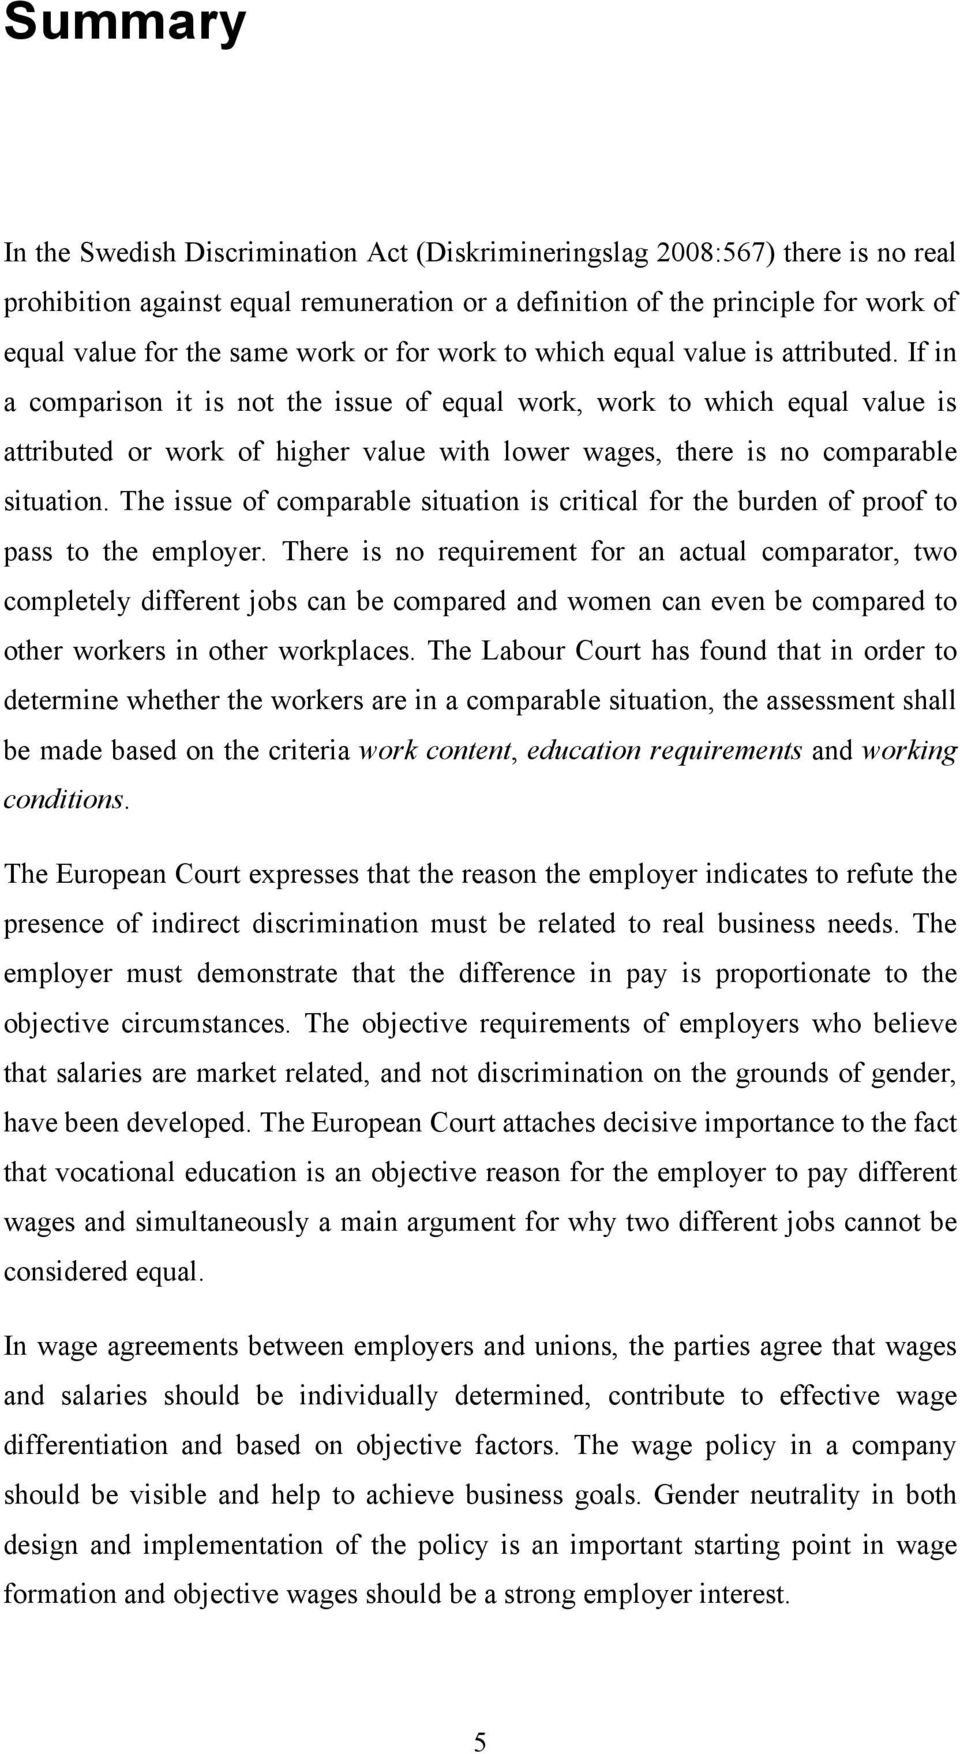 If in a comparison it is not the issue of equal work, work to which equal value is attributed or work of higher value with lower wages, there is no comparable situation.